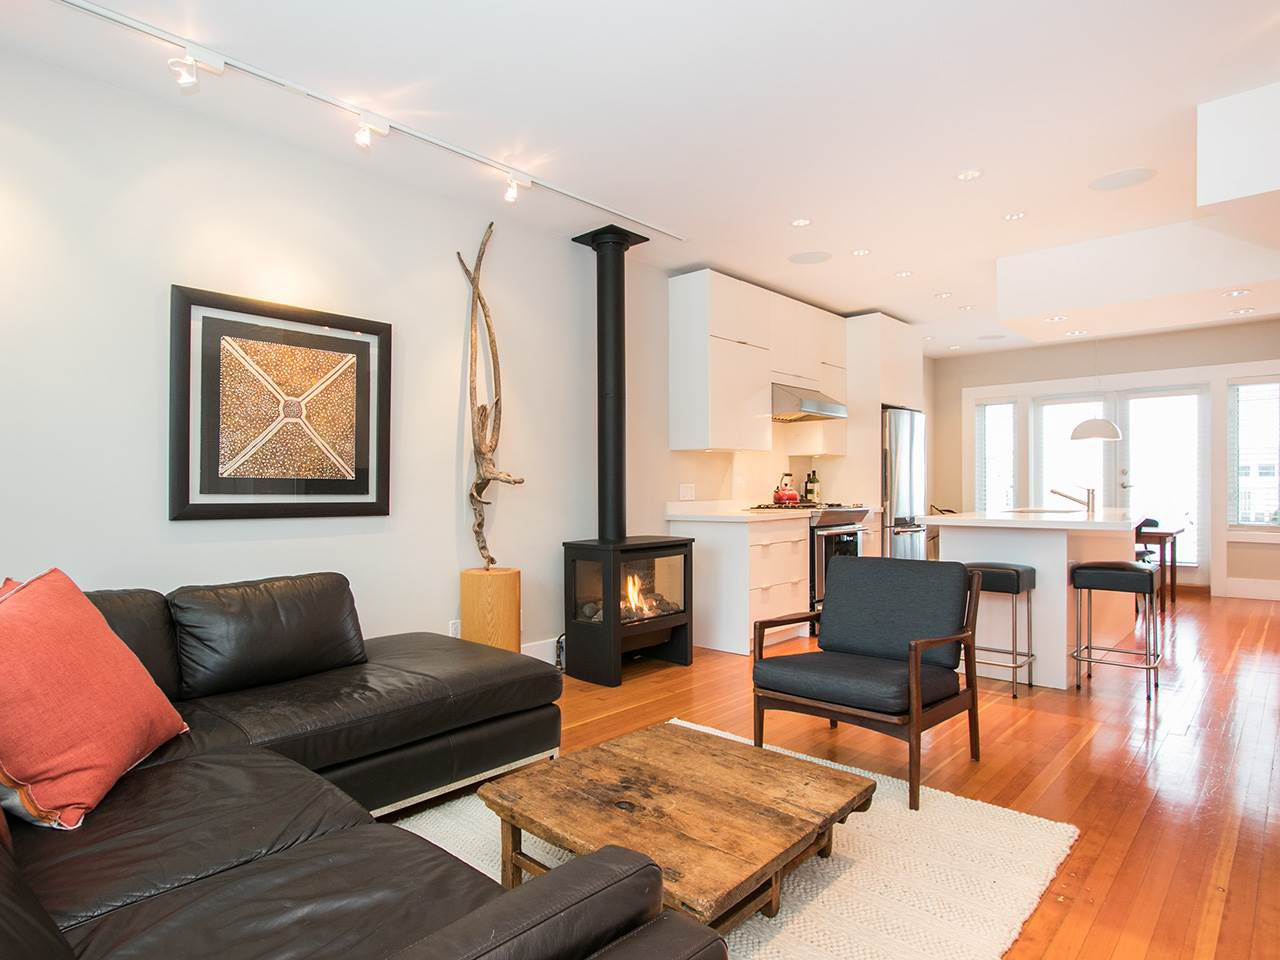 Main Photo: 2281 GRAVELEY STREET in Vancouver: Grandview VE House for sale (Vancouver East)  : MLS®# R2137173